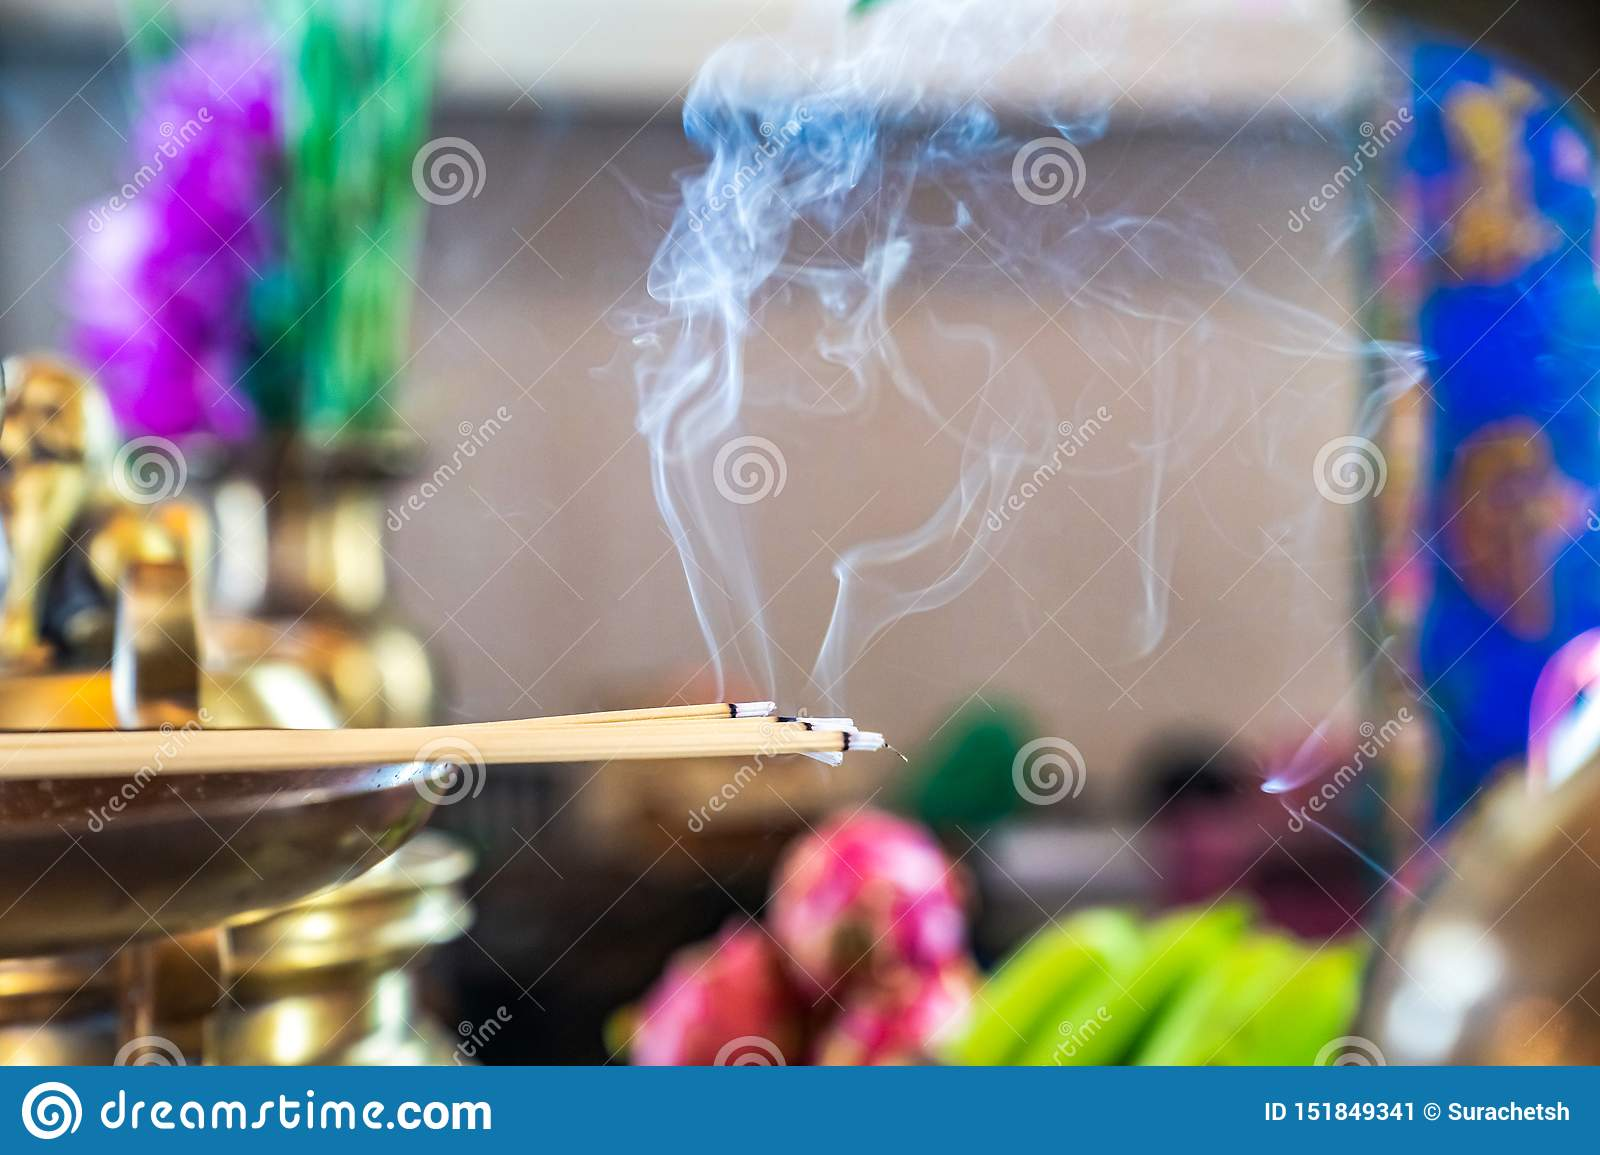 Incense On The Brass Candlestrick With The Smoke Out From